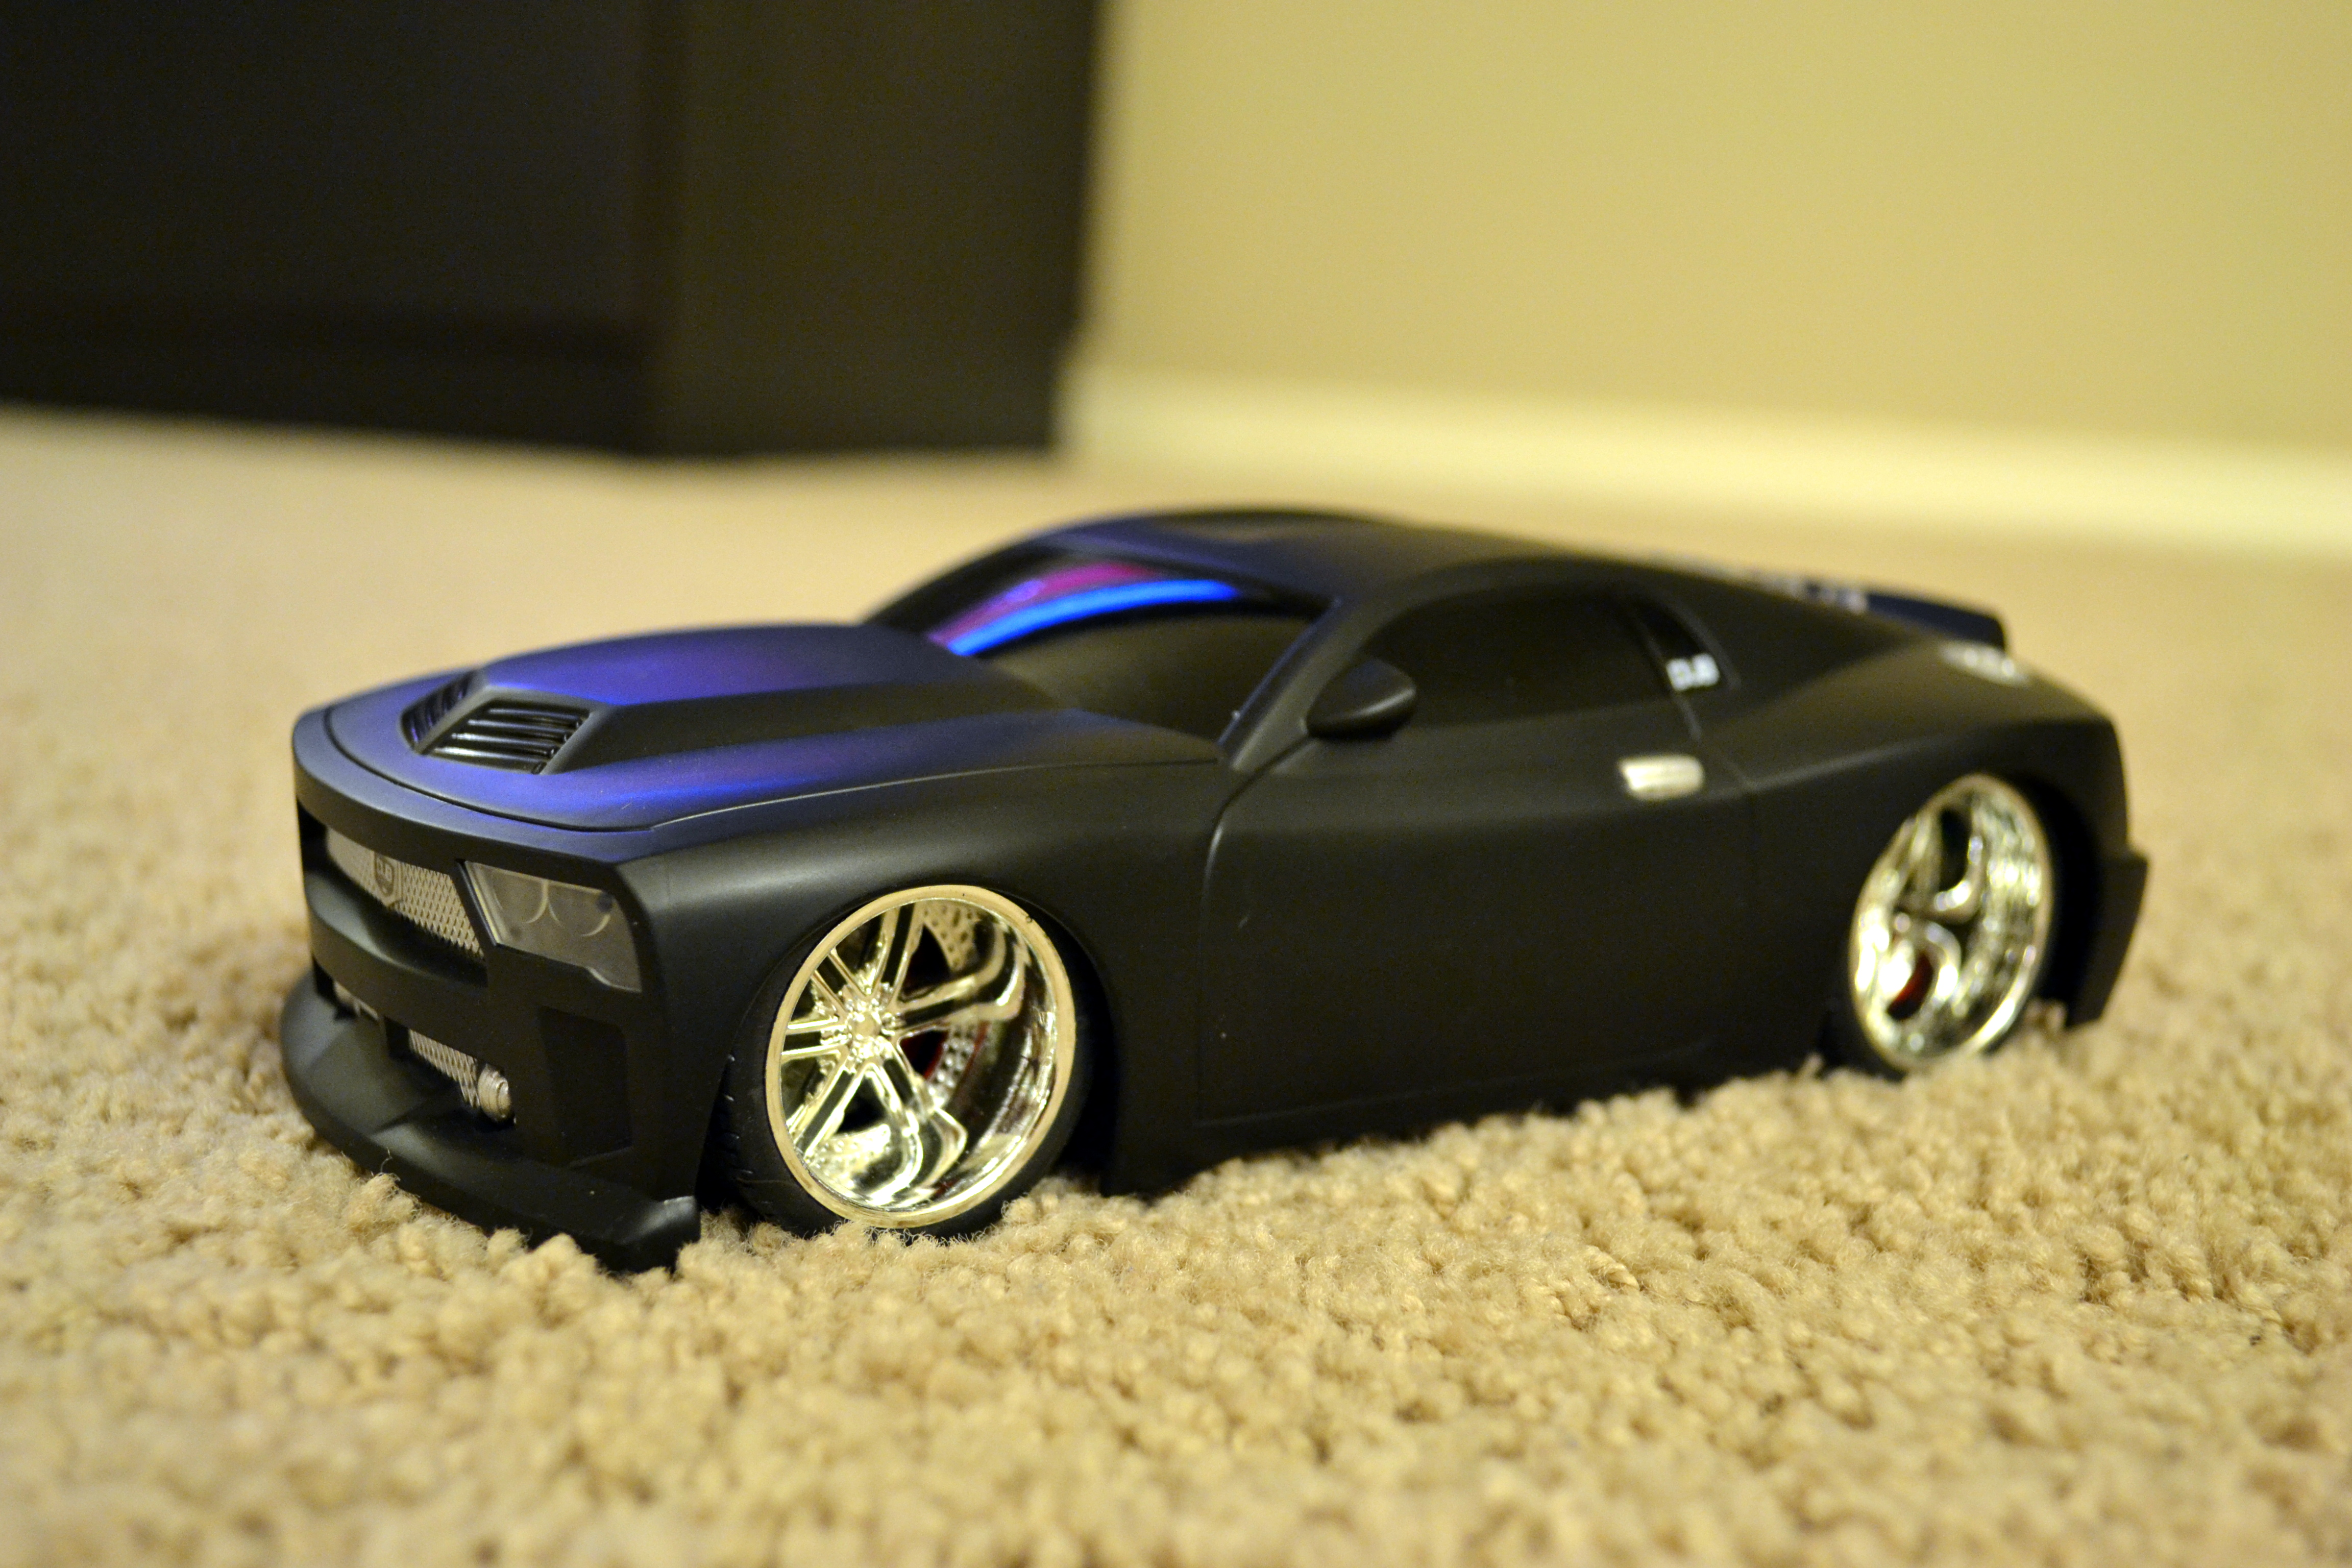 toy state's dub garage beat makerz is a toy car with audio you can